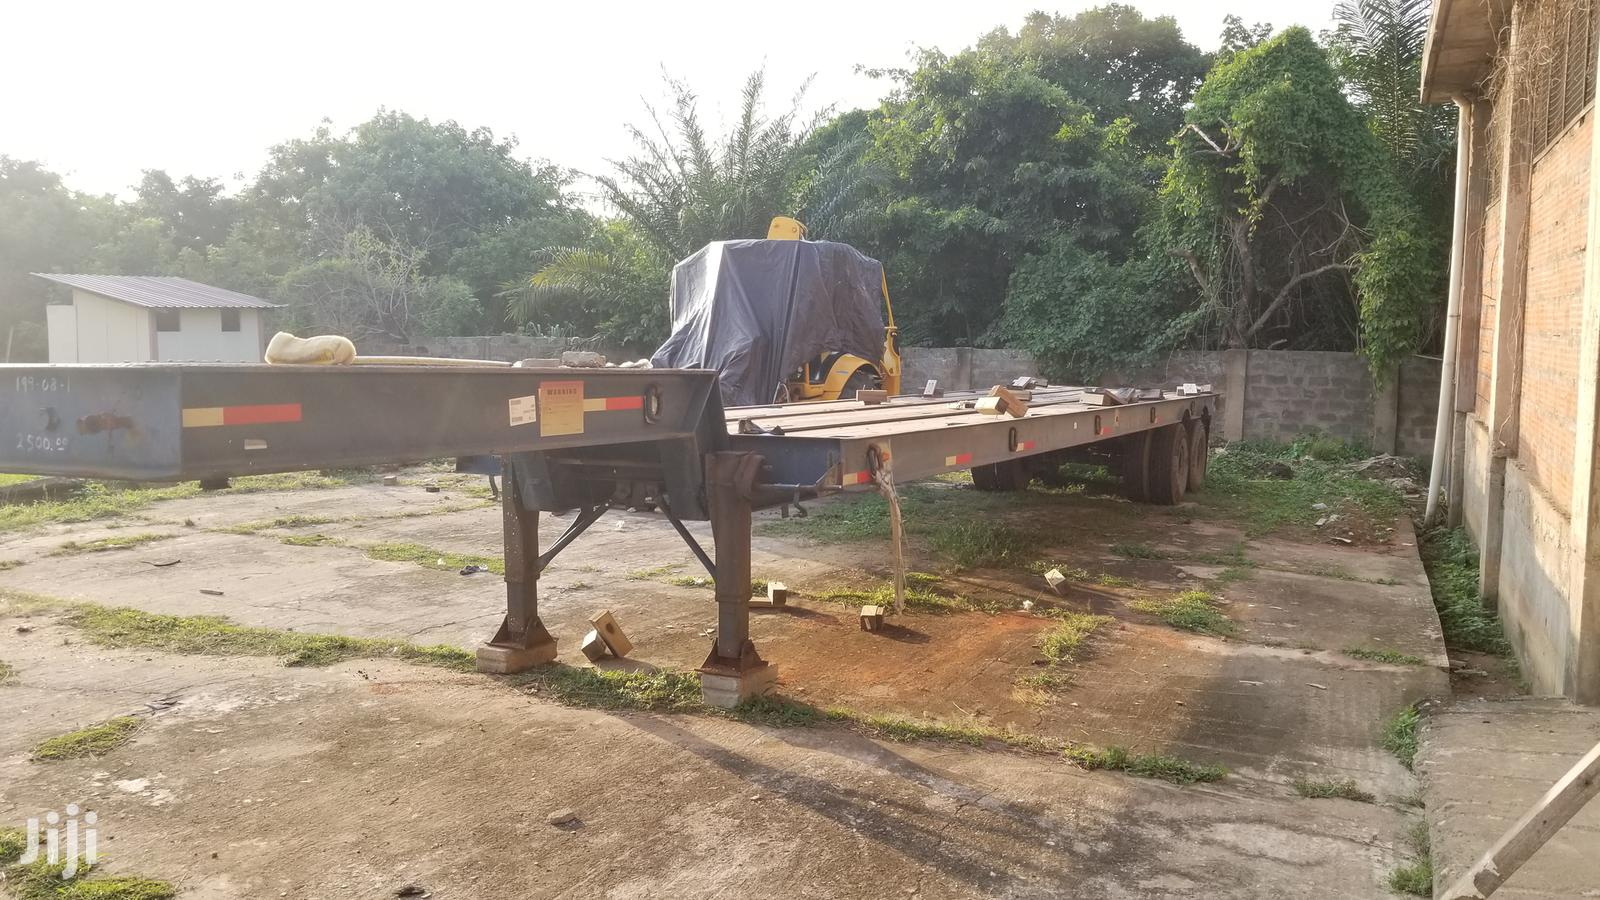 Home Used Trailer | Trucks & Trailers for sale in Yilo Krobo, Eastern Region, Ghana